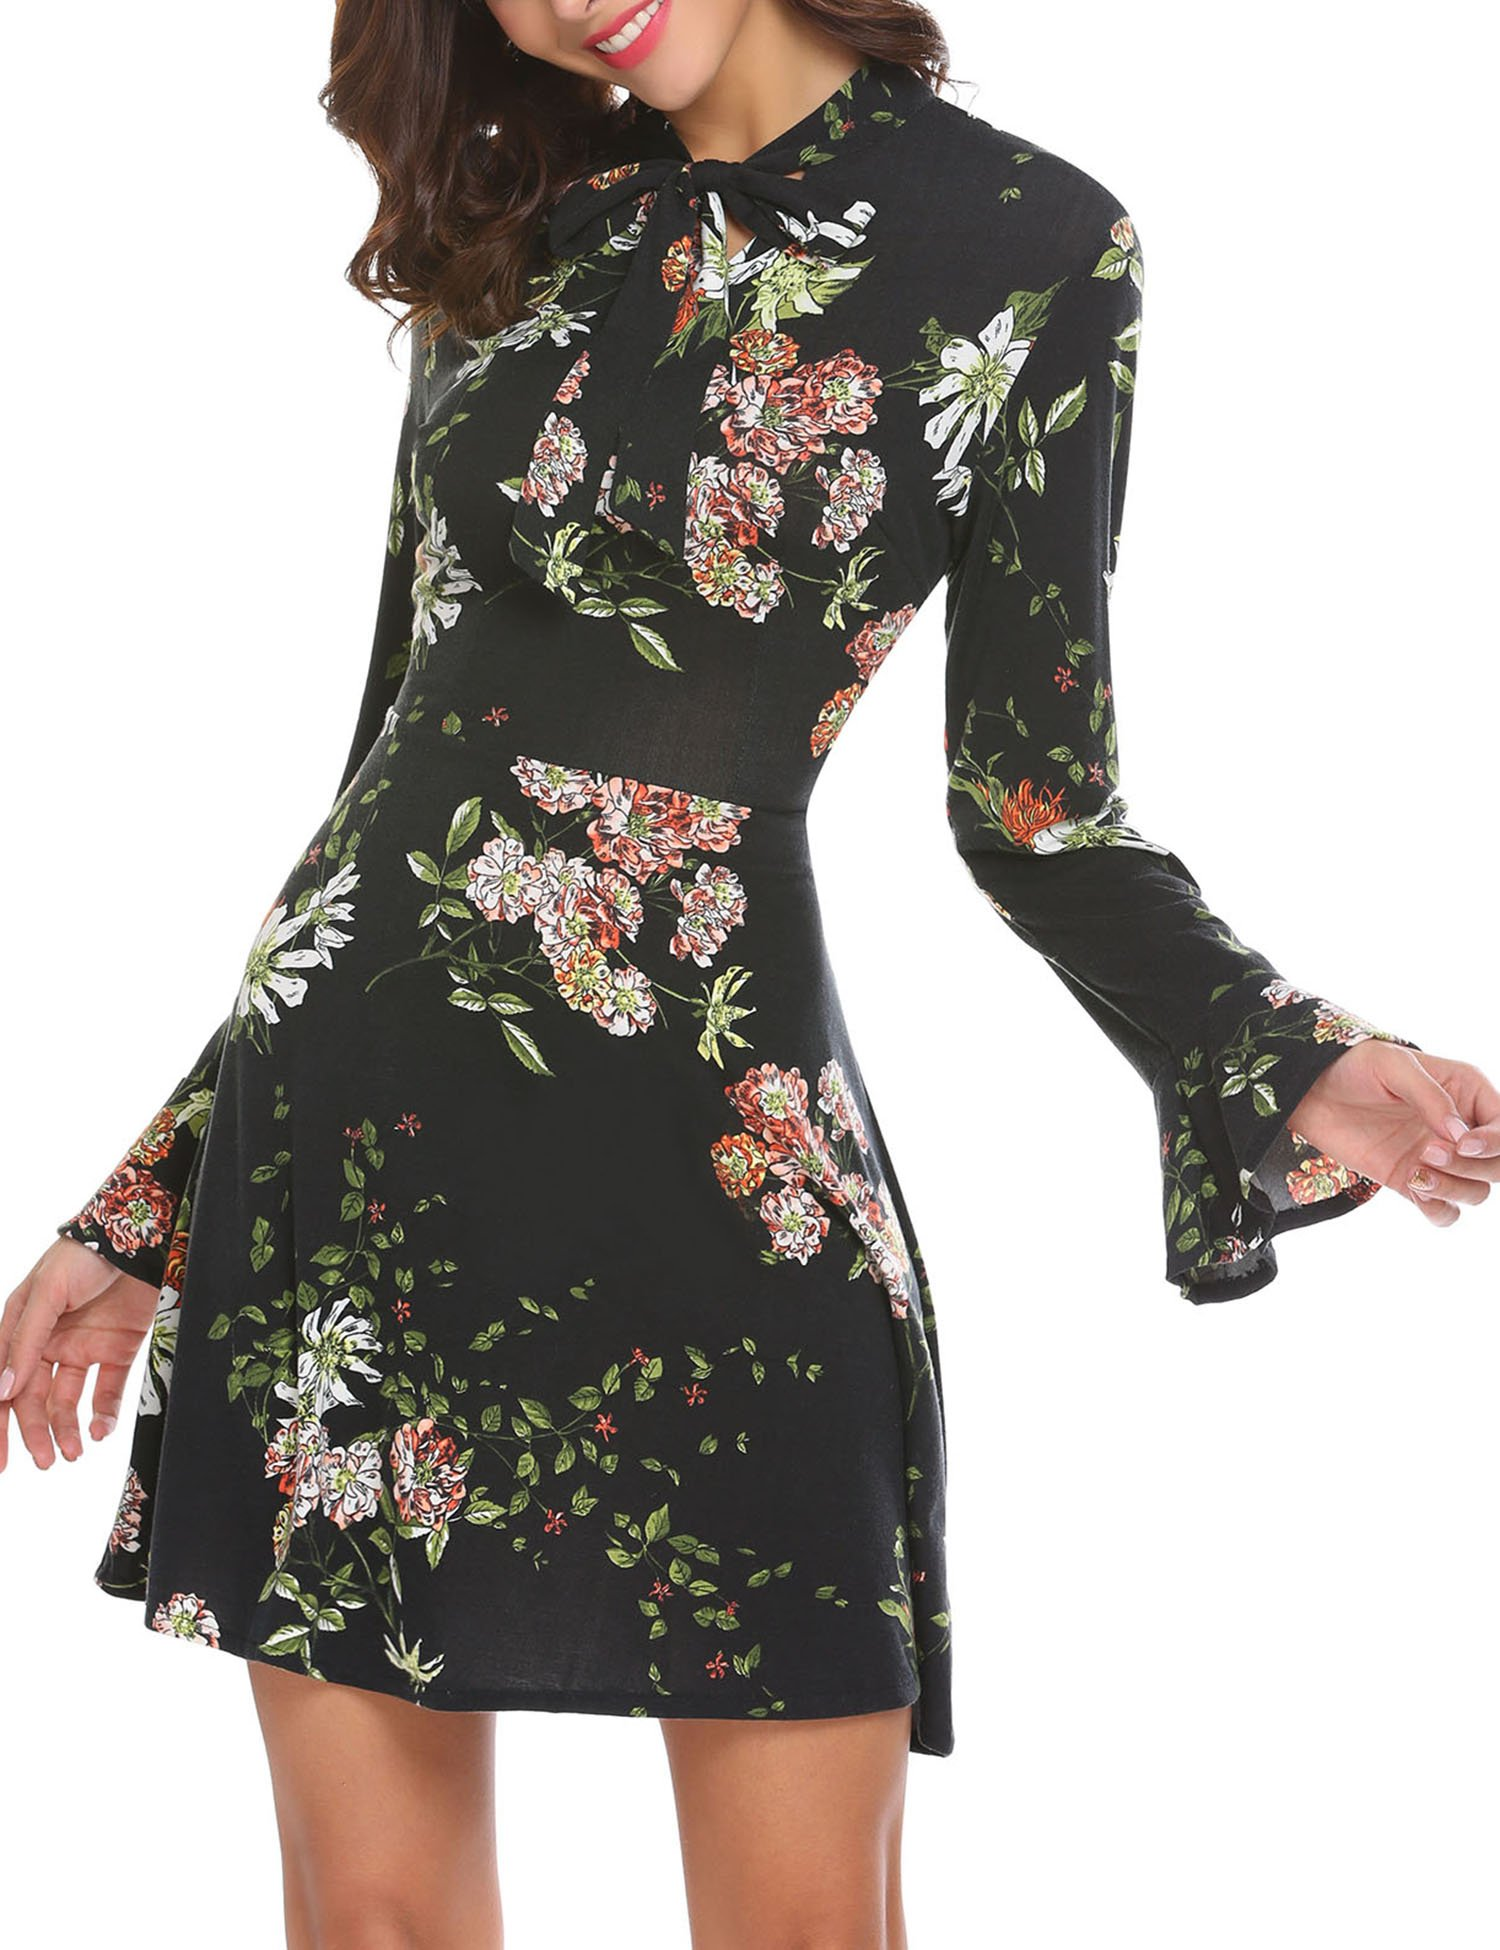 ACEVOG Women's Casual Floral Print Bell Sleeve Fit and Flare Dress (X-Large, Black) by ACEVOG (Image #3)